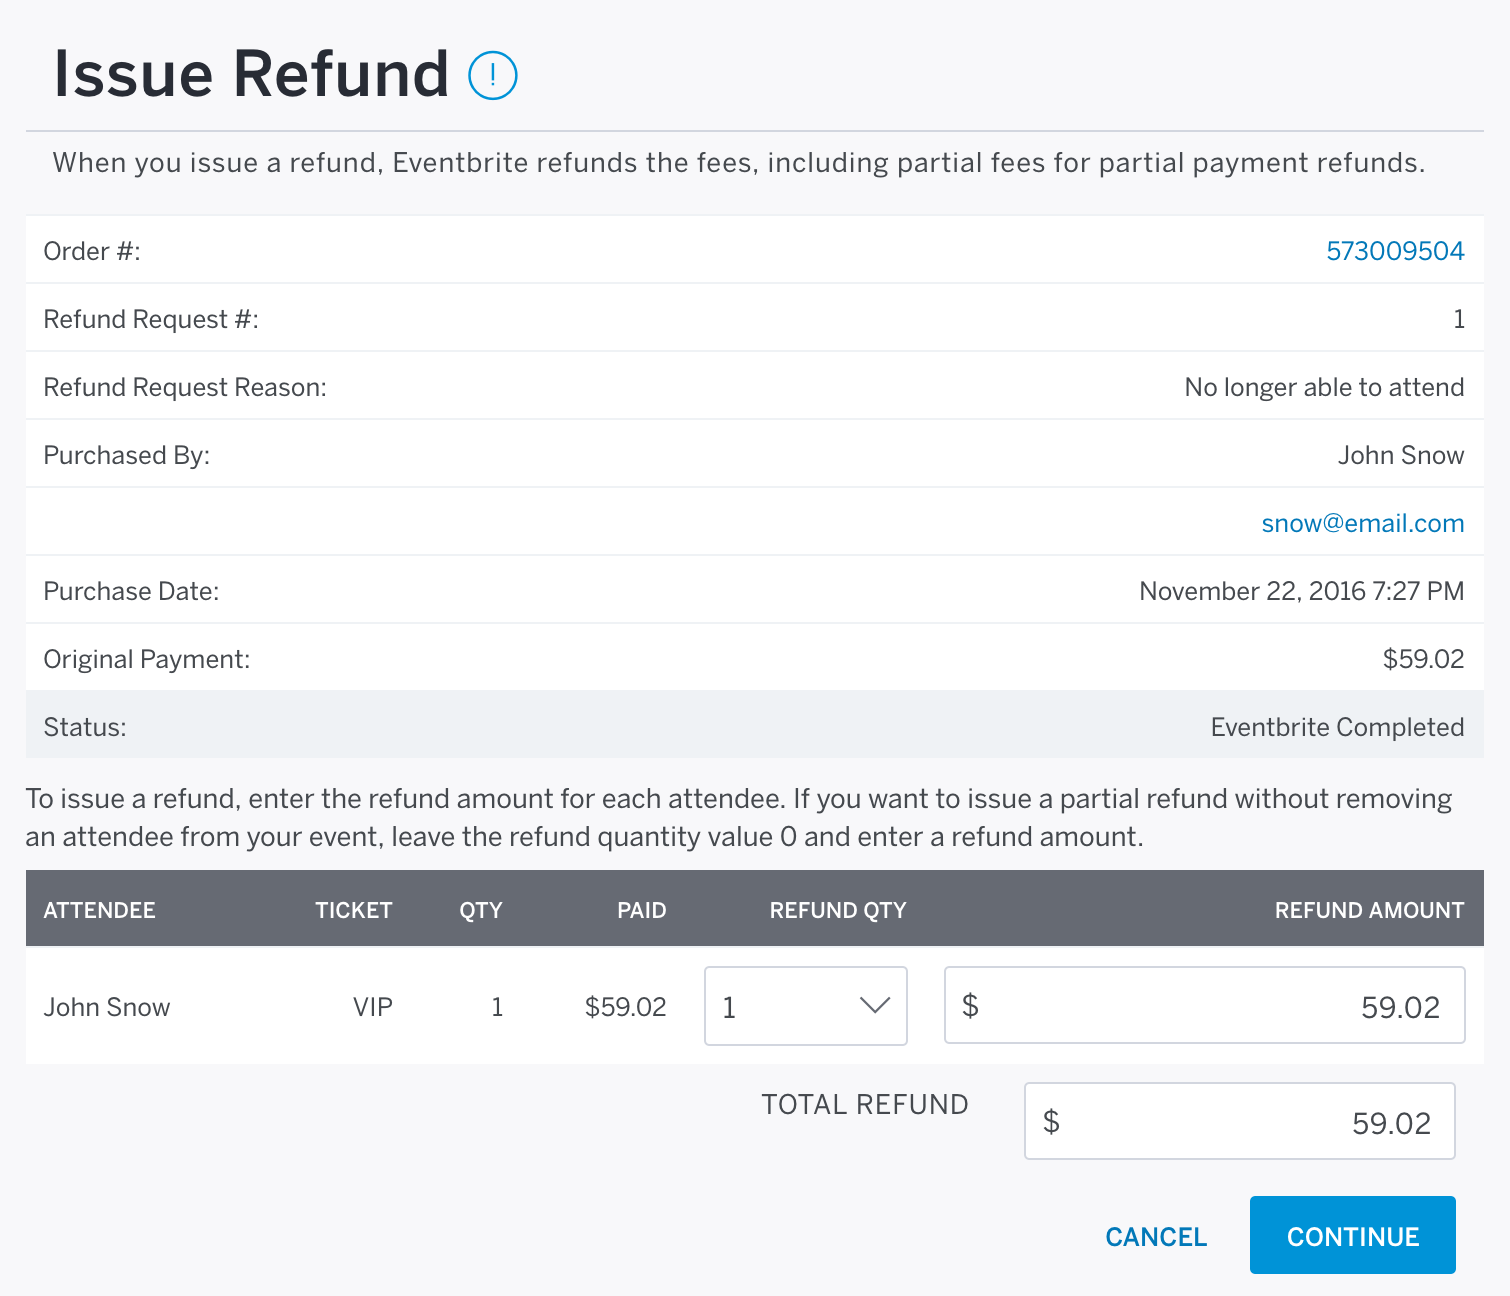 Adjust the amount you want to refund under Refund Quantity and Refund Amount near the bottom right of the Issue Refund screen.